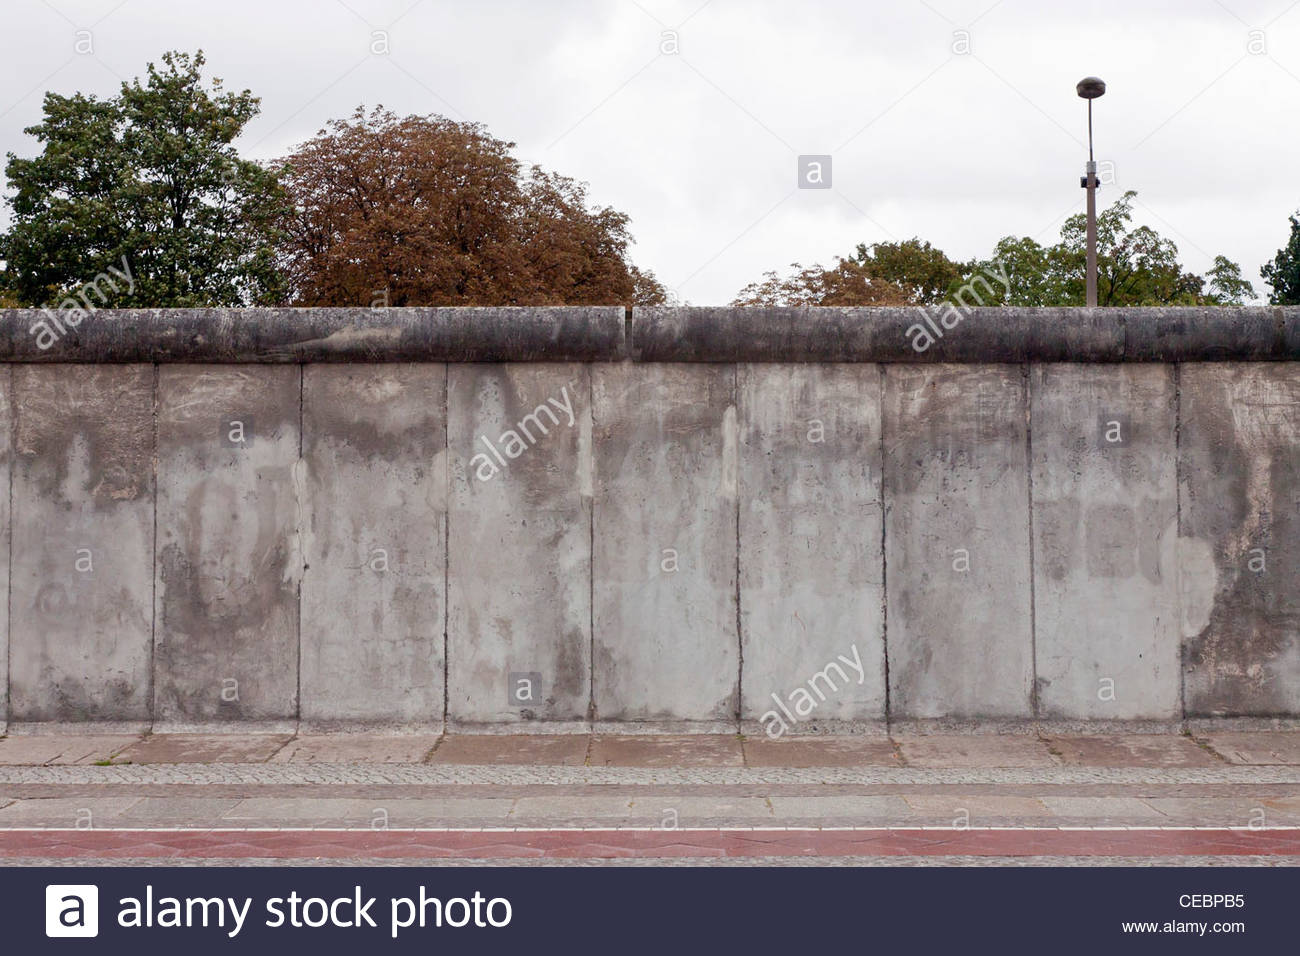 A preserved section of the Berlin Wall in front of the Berlin Wall Memorial, Berlin, Germany, Europe - Stock Image